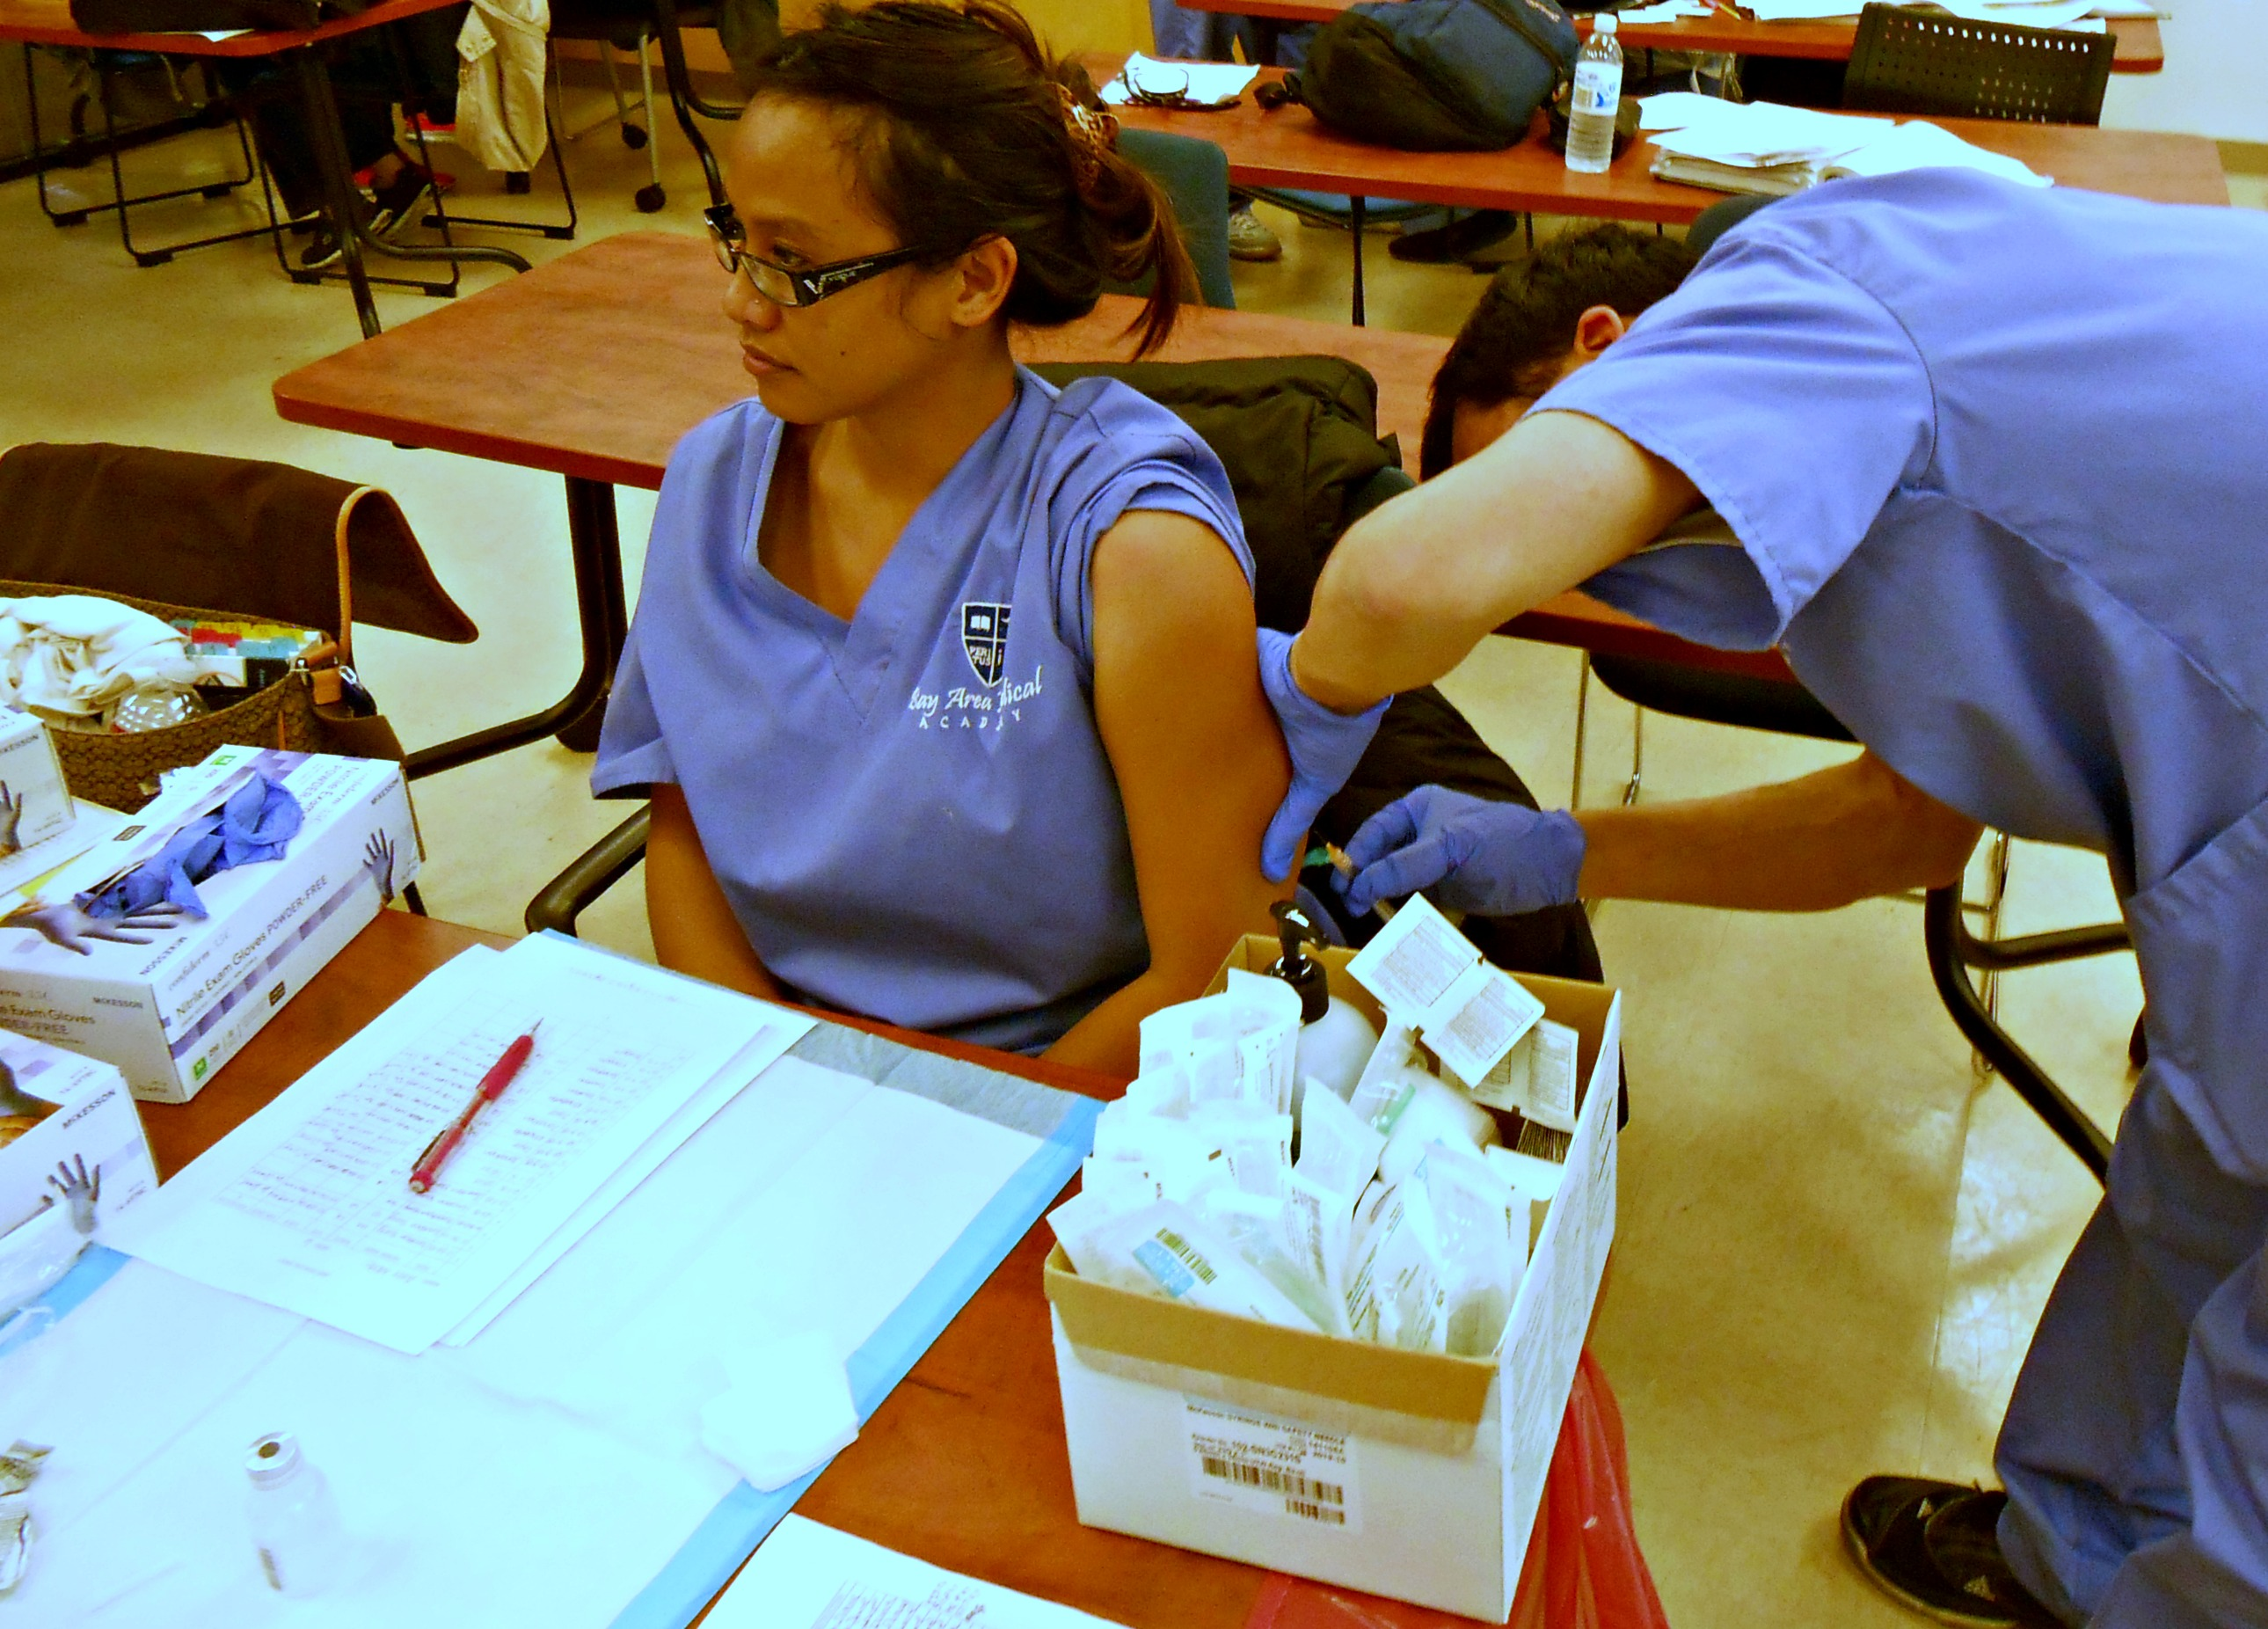 A medical assistant volunteering their time